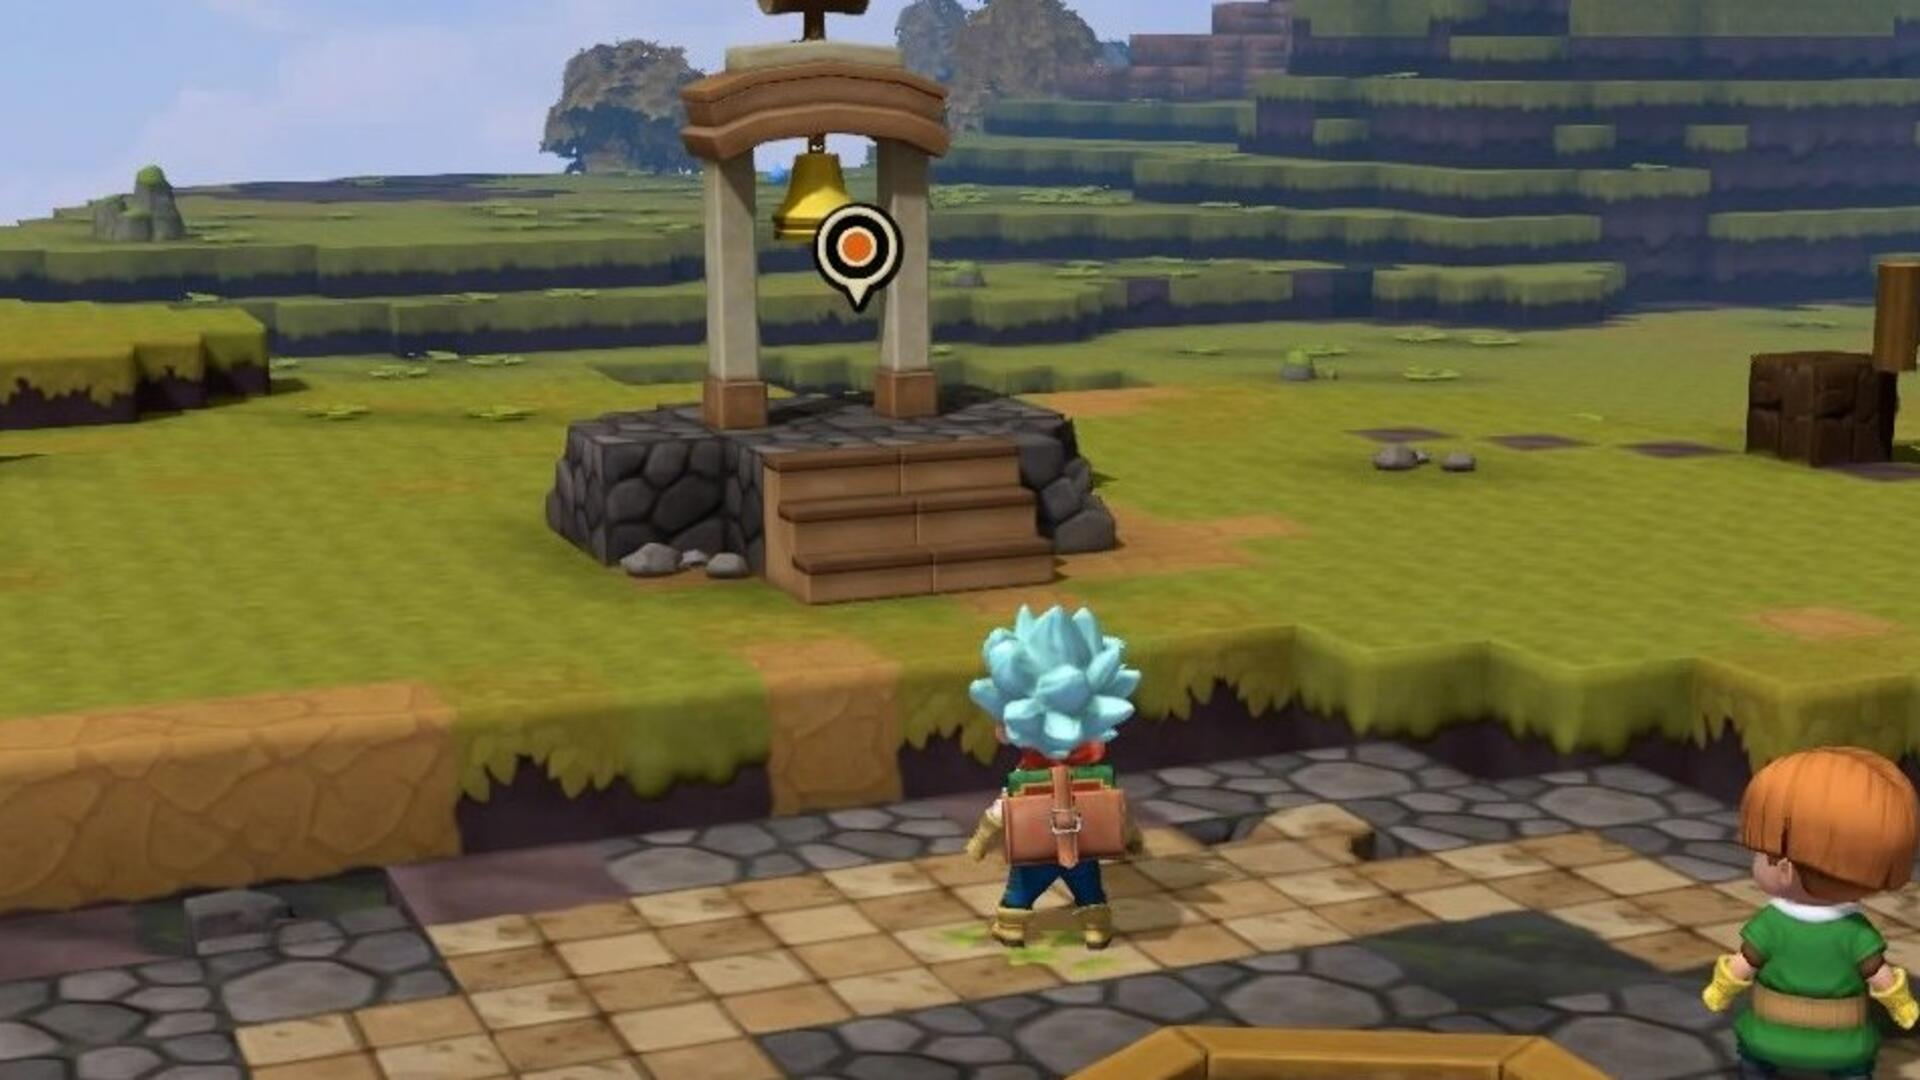 Dragon Quest Builders 2 Fast Travel - How to Unlock Fast Travel in Dragon Quest Builders 2